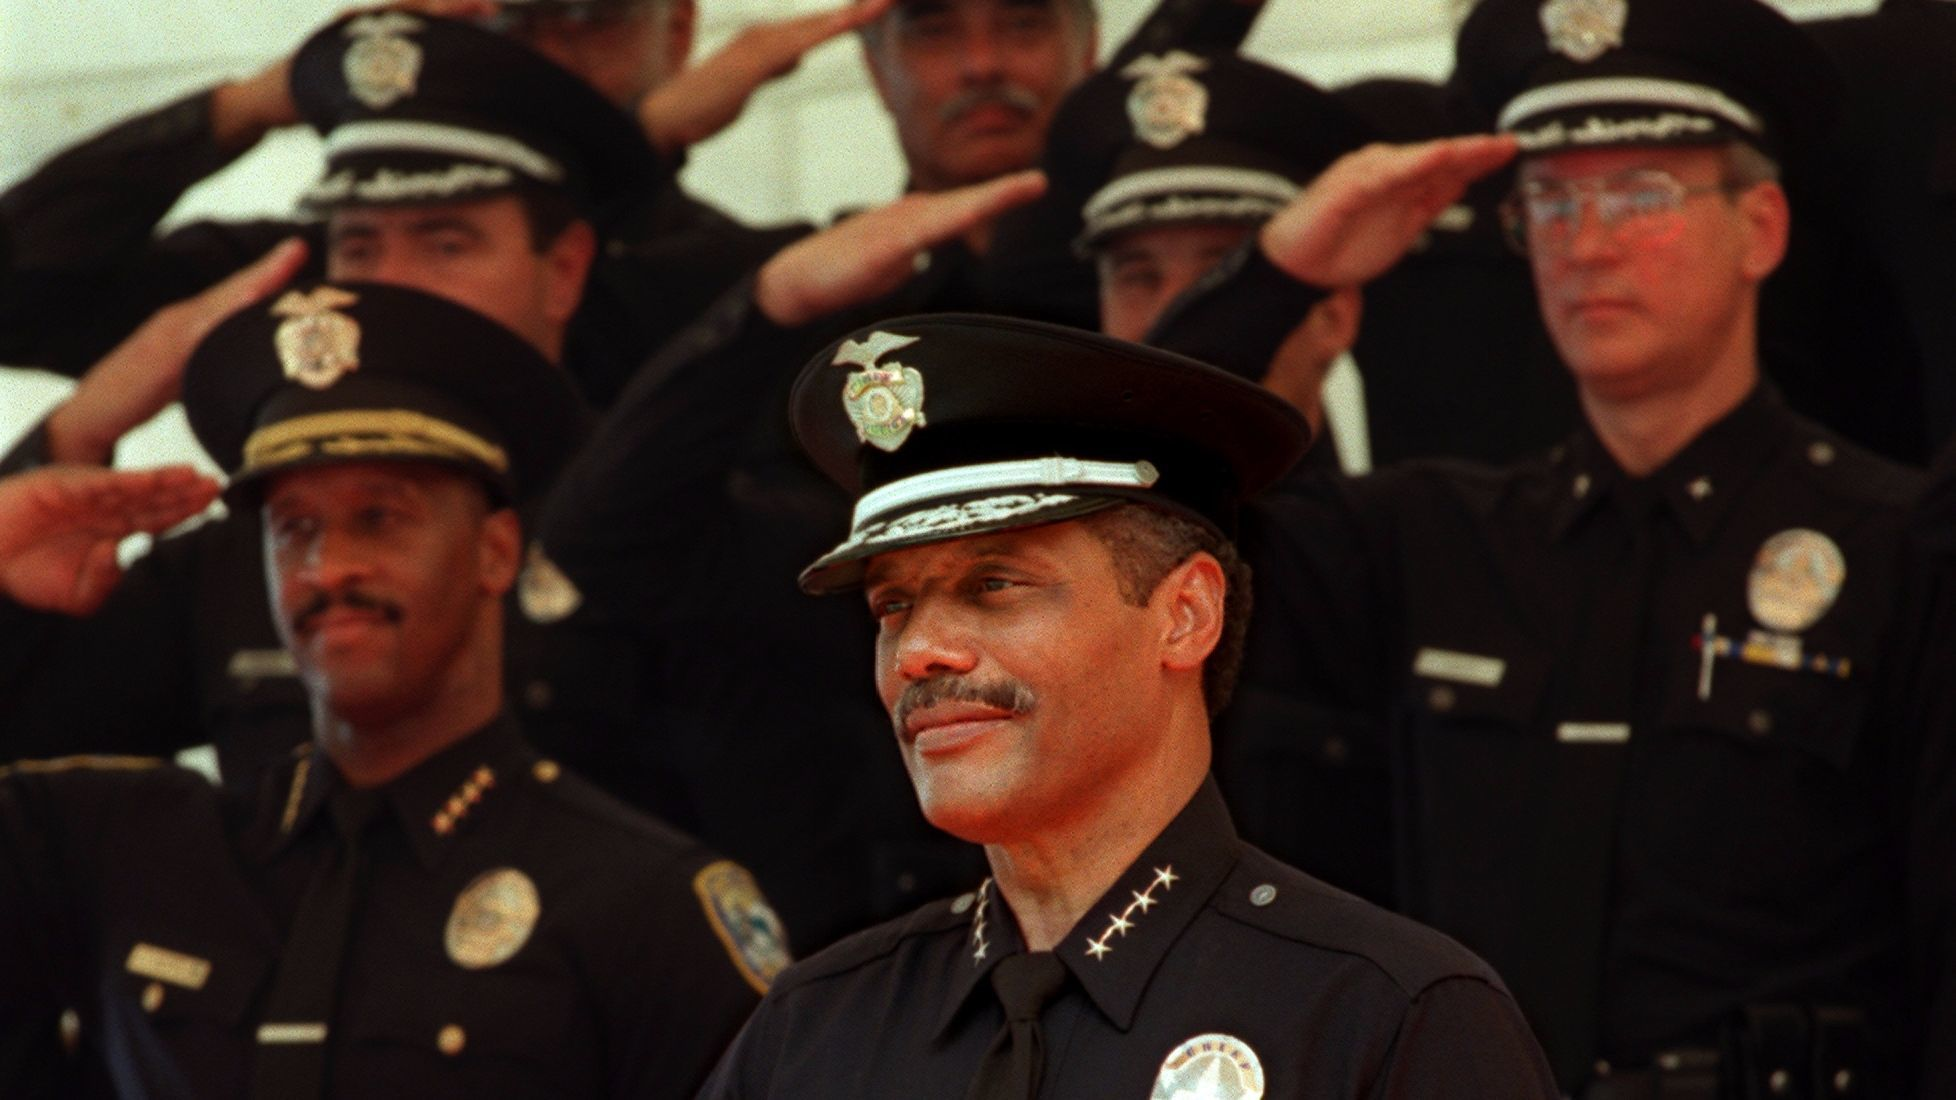 Bernard C. Parks receives a salute from officers as he is formally sworn in as the LAPD's chief in 1997.